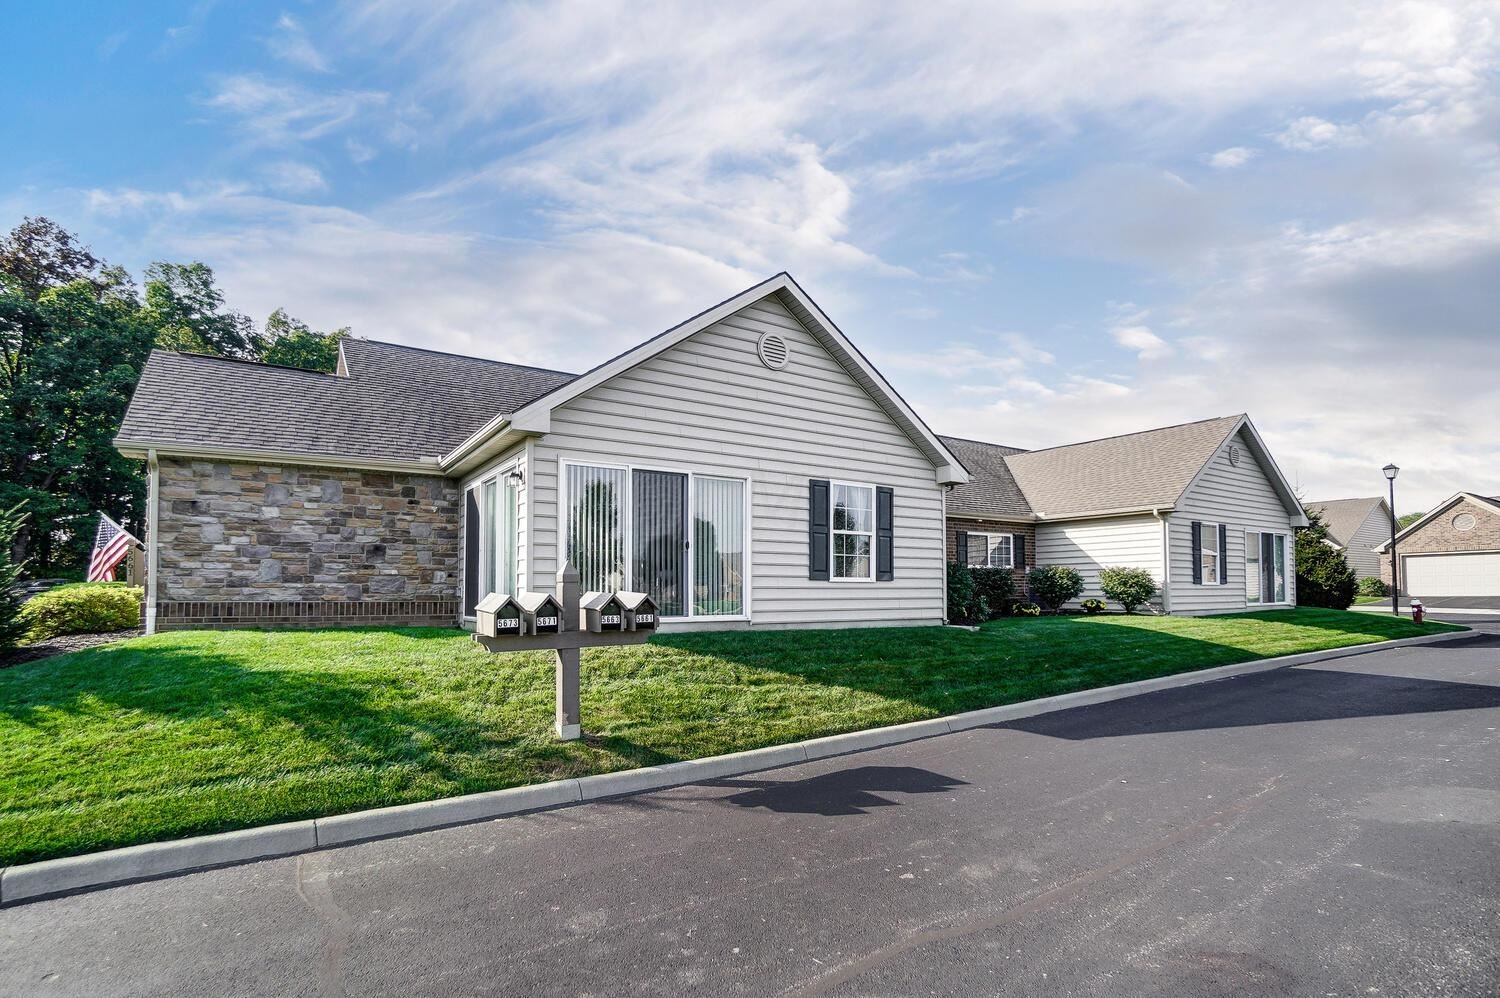 Photo of 5661 White Goose Road #13-566, Westerville, OH 43081 (MLS # 221040987)